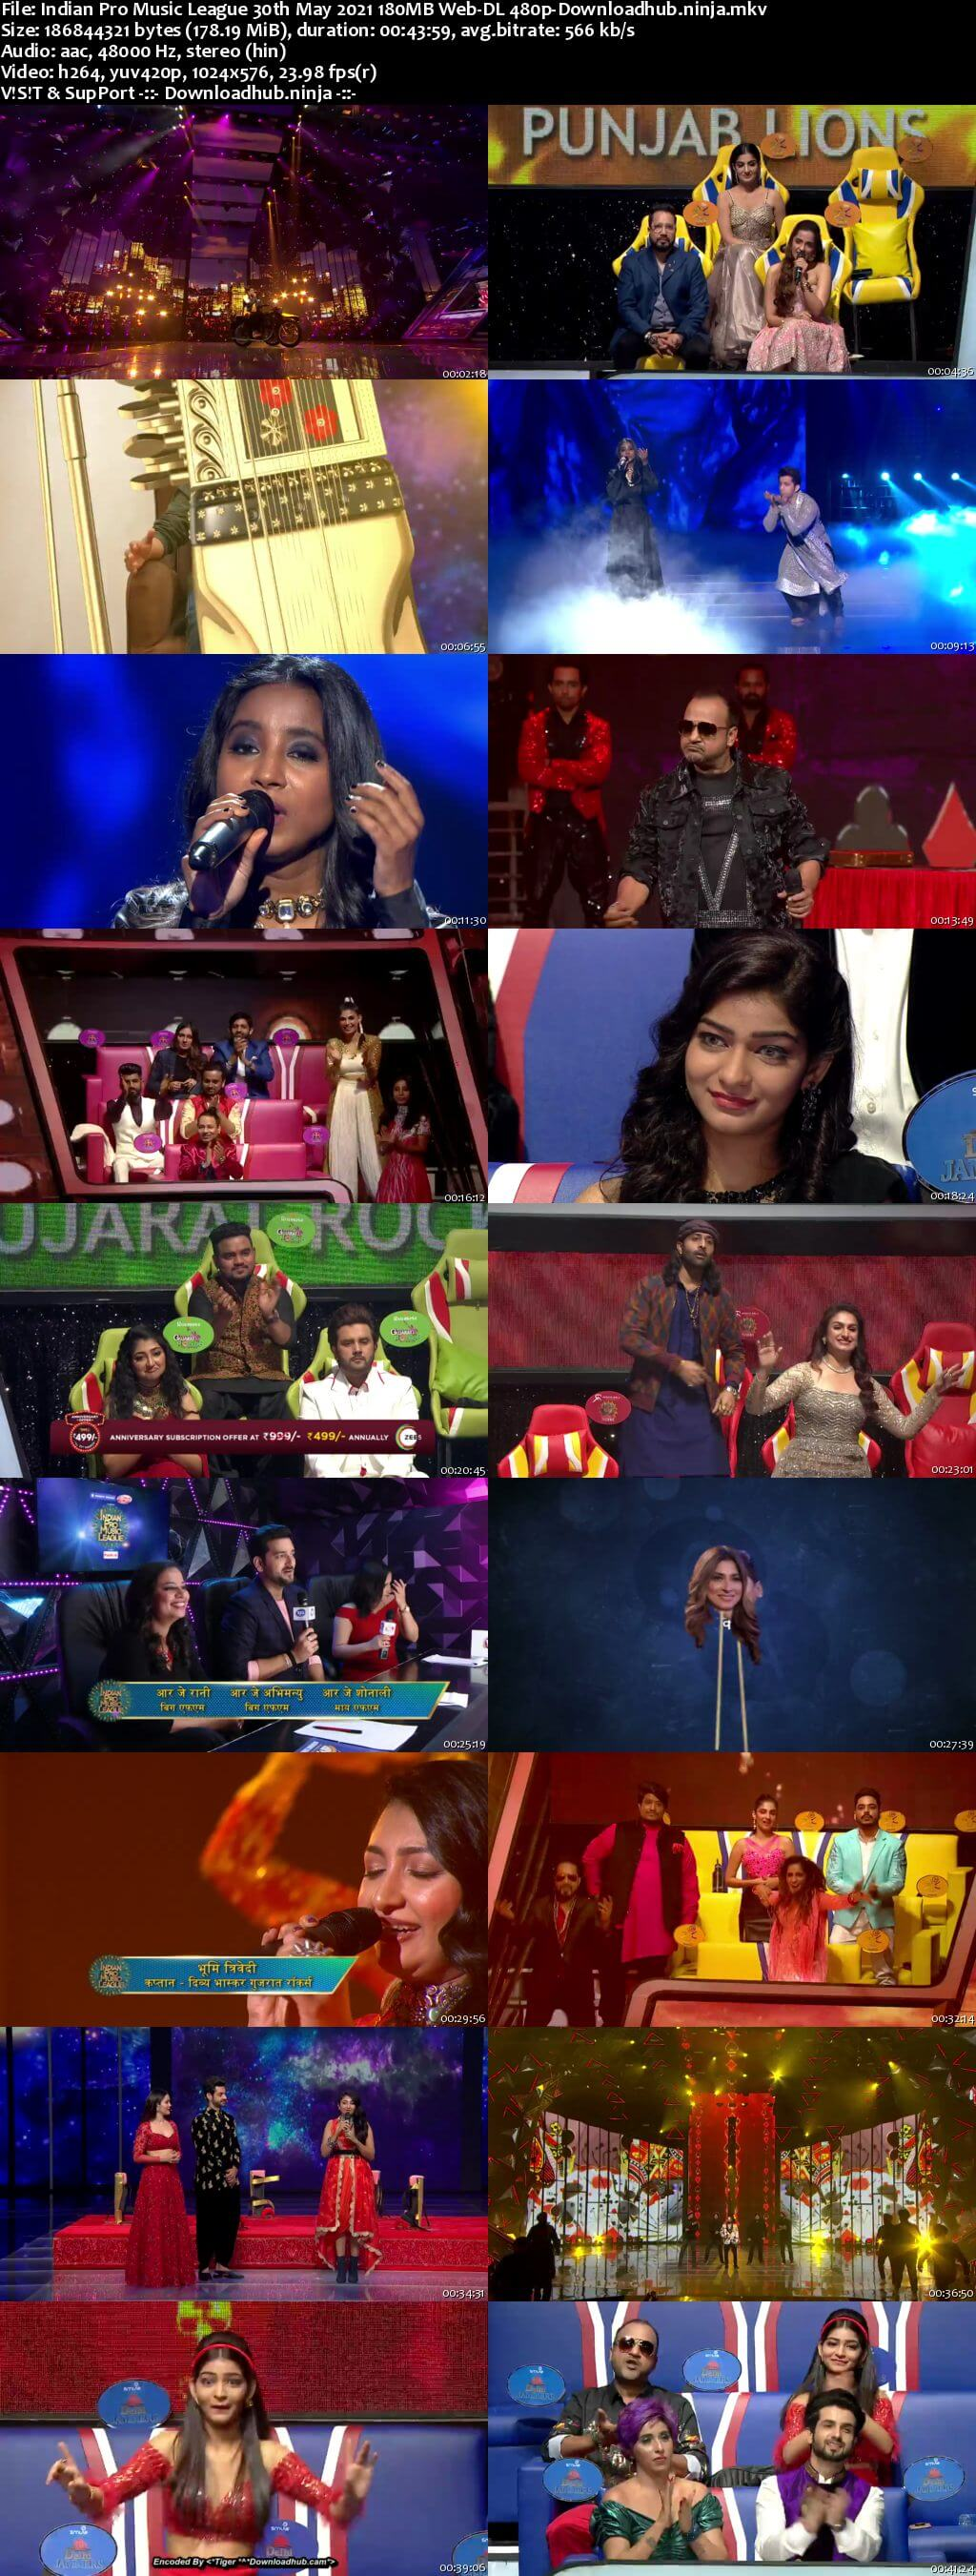 Indian Pro Music League 30th May 2021 180MB Web-DL 480p